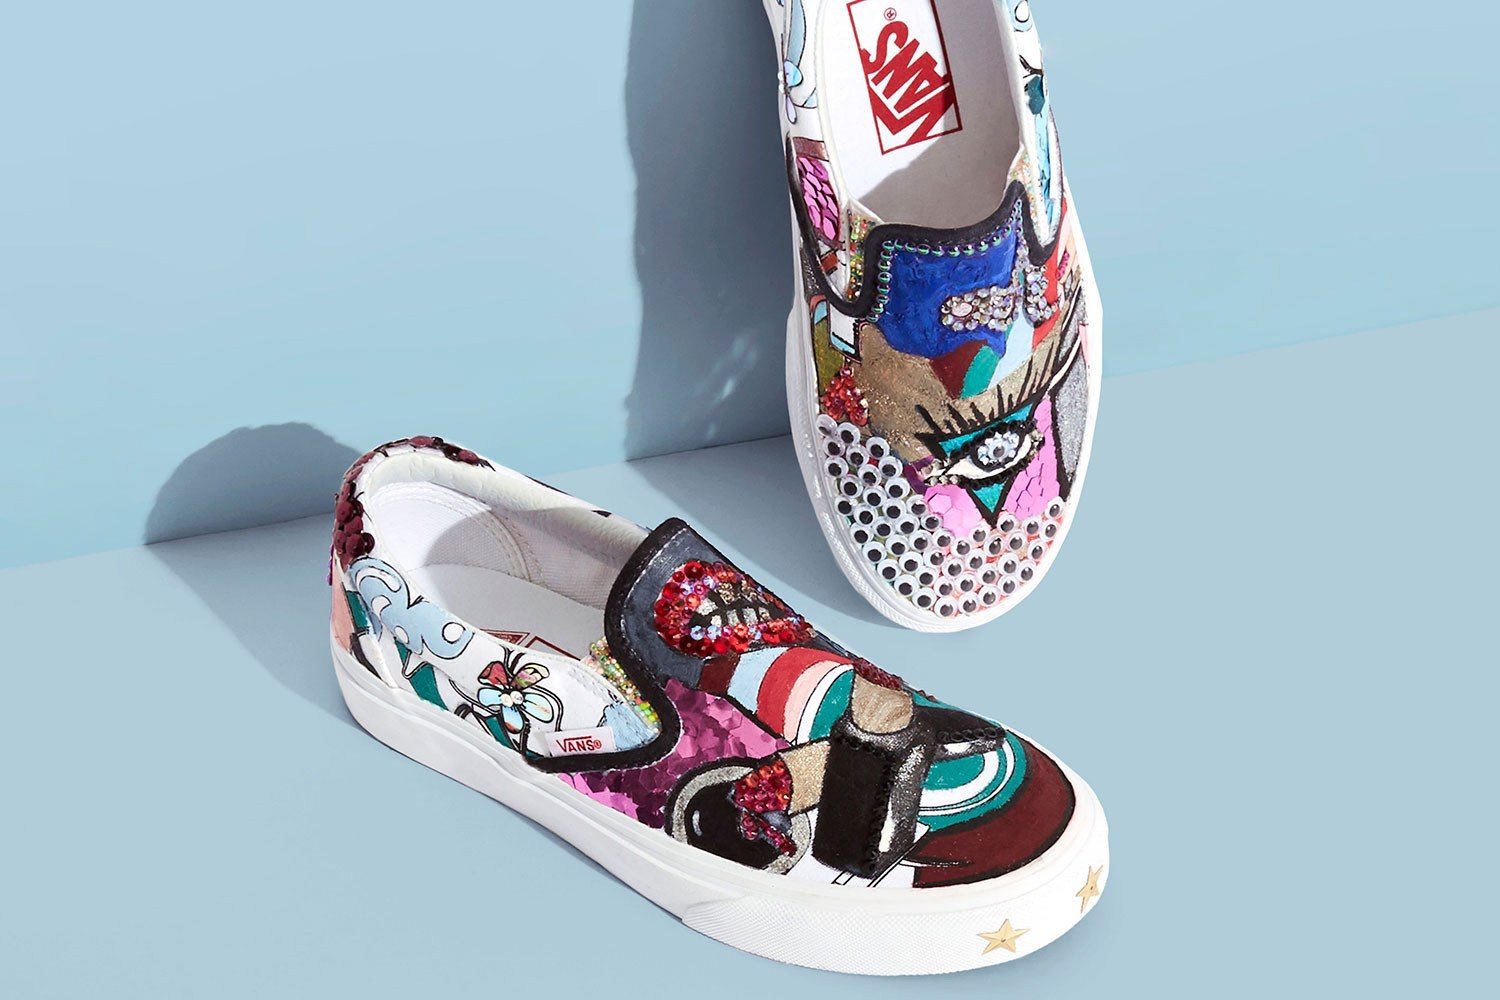 marc-jacobs-and-vans-slip-on-capsule-collection-the-chicflaneuse.com-3